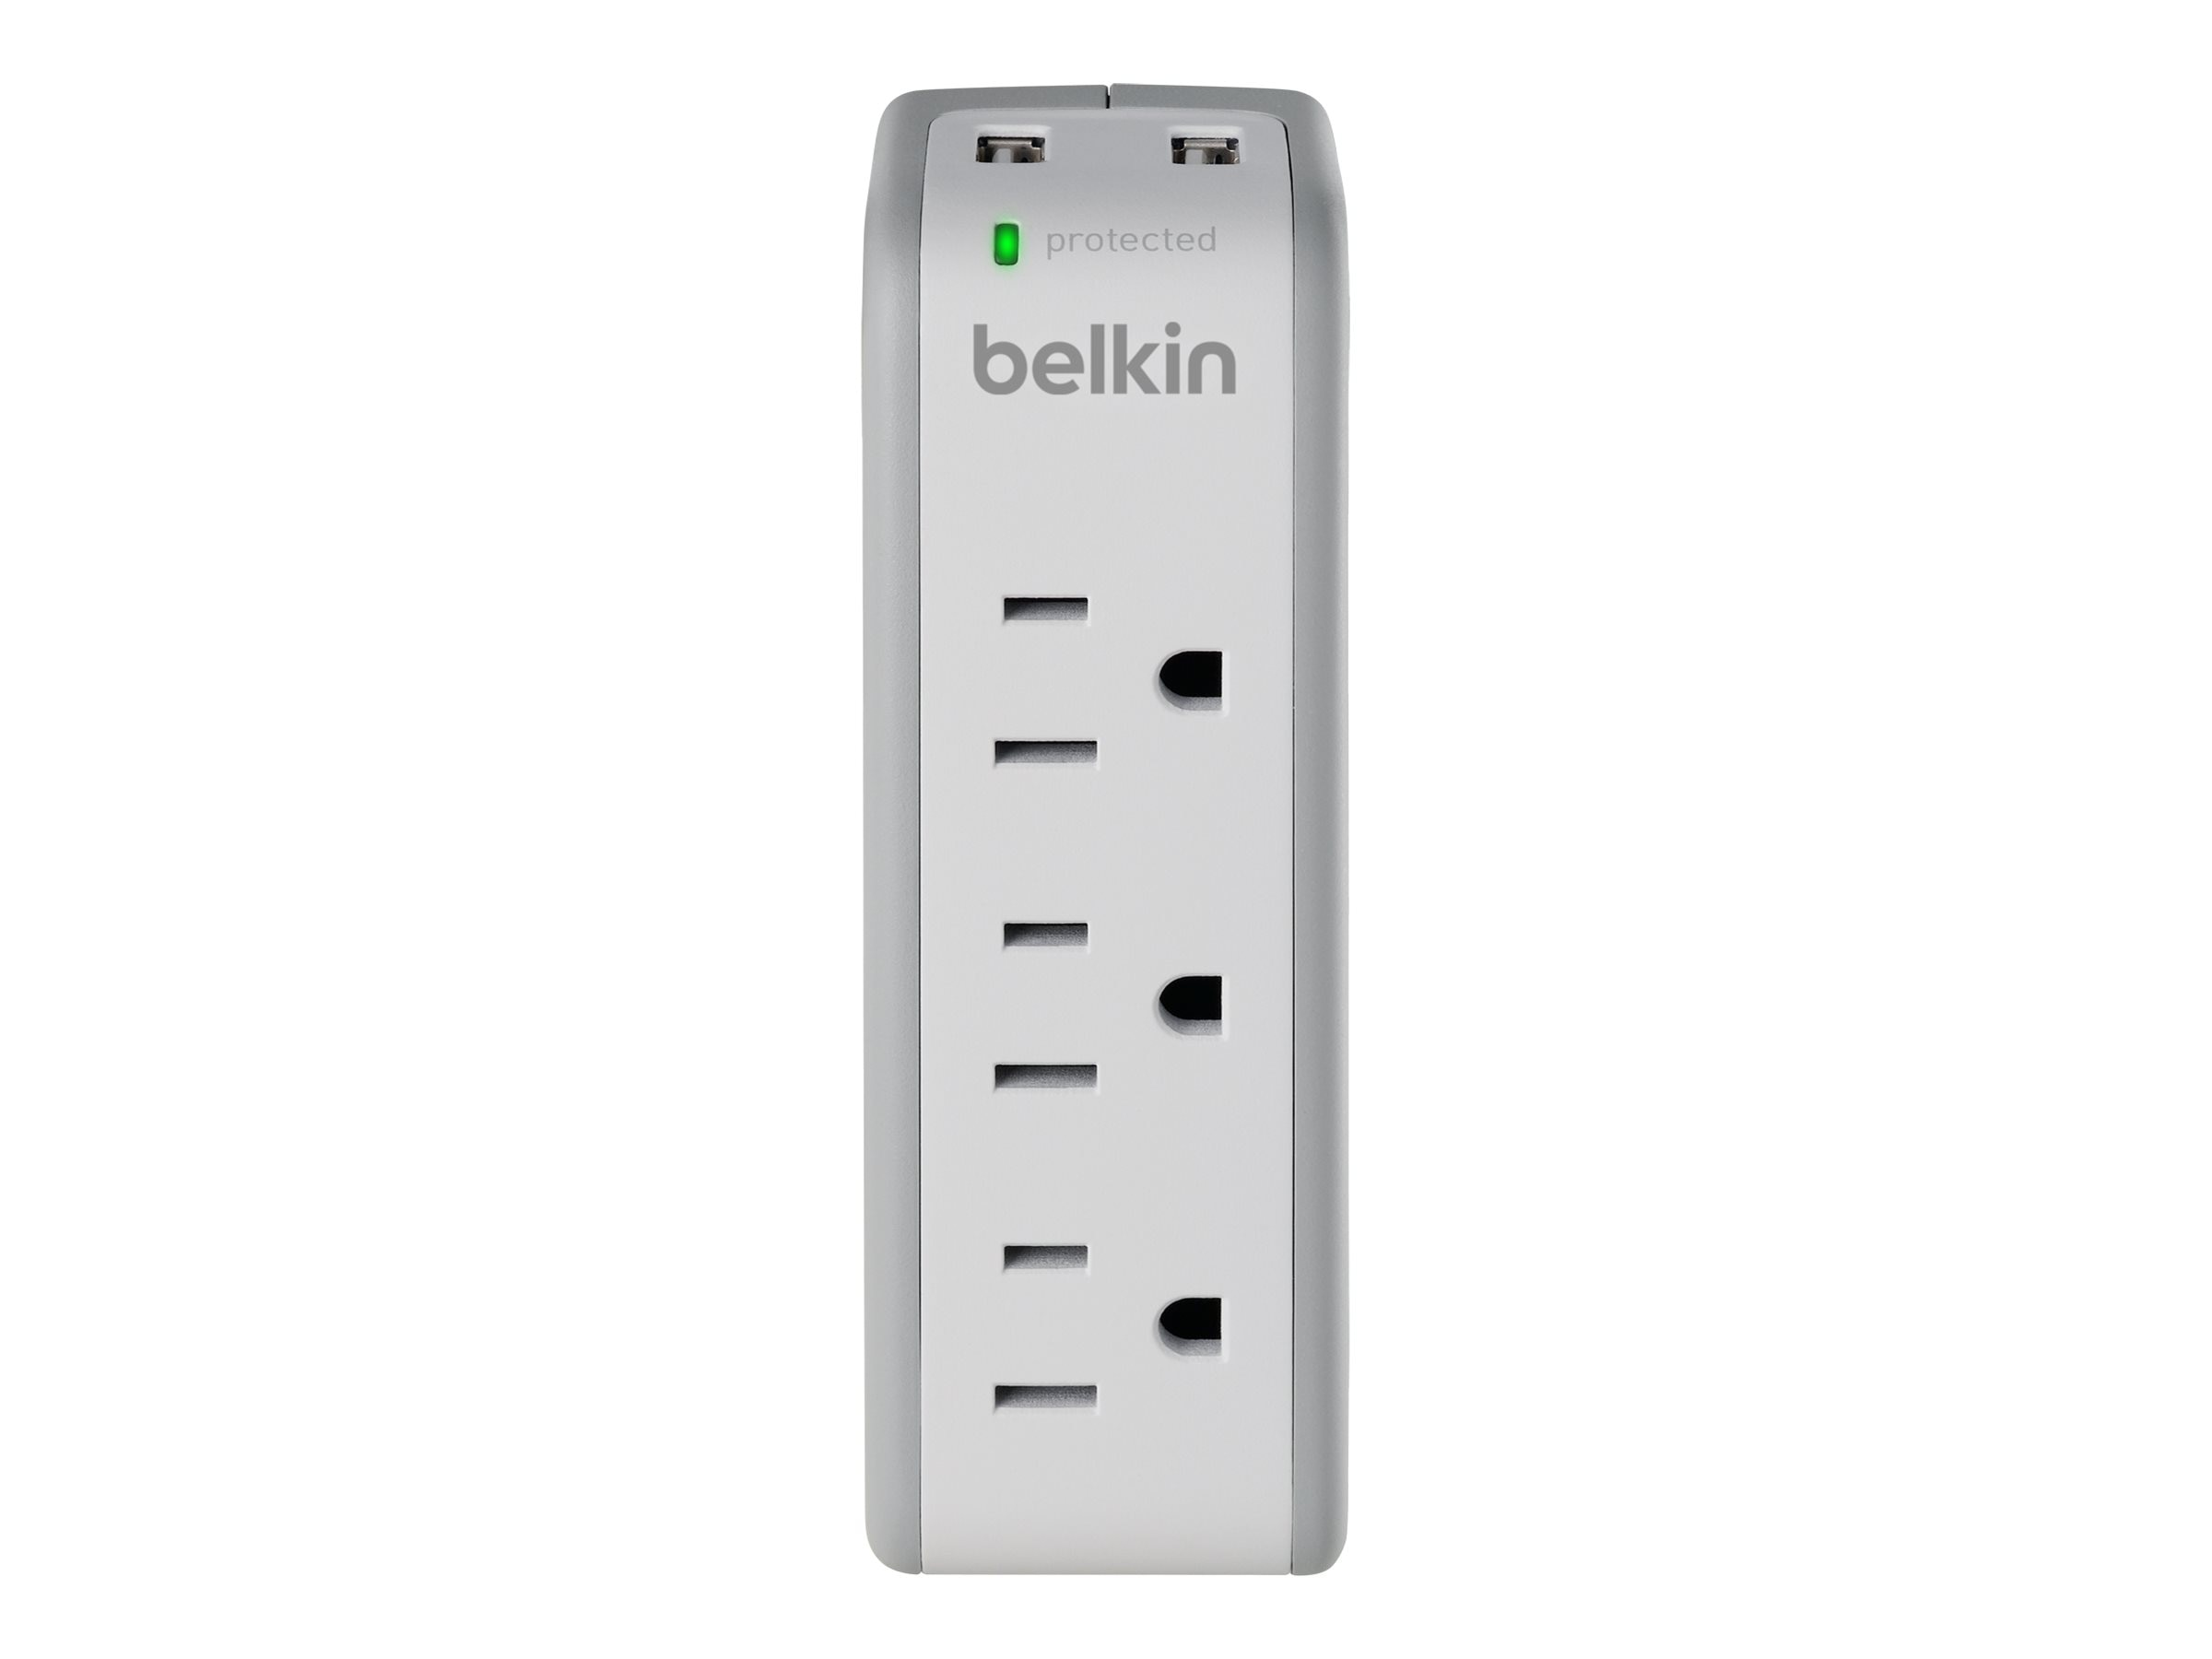 Belkin Mini Surge Protector with USB Charger, (2) USB Outlets, 918 Joules - $1 Instant Savings